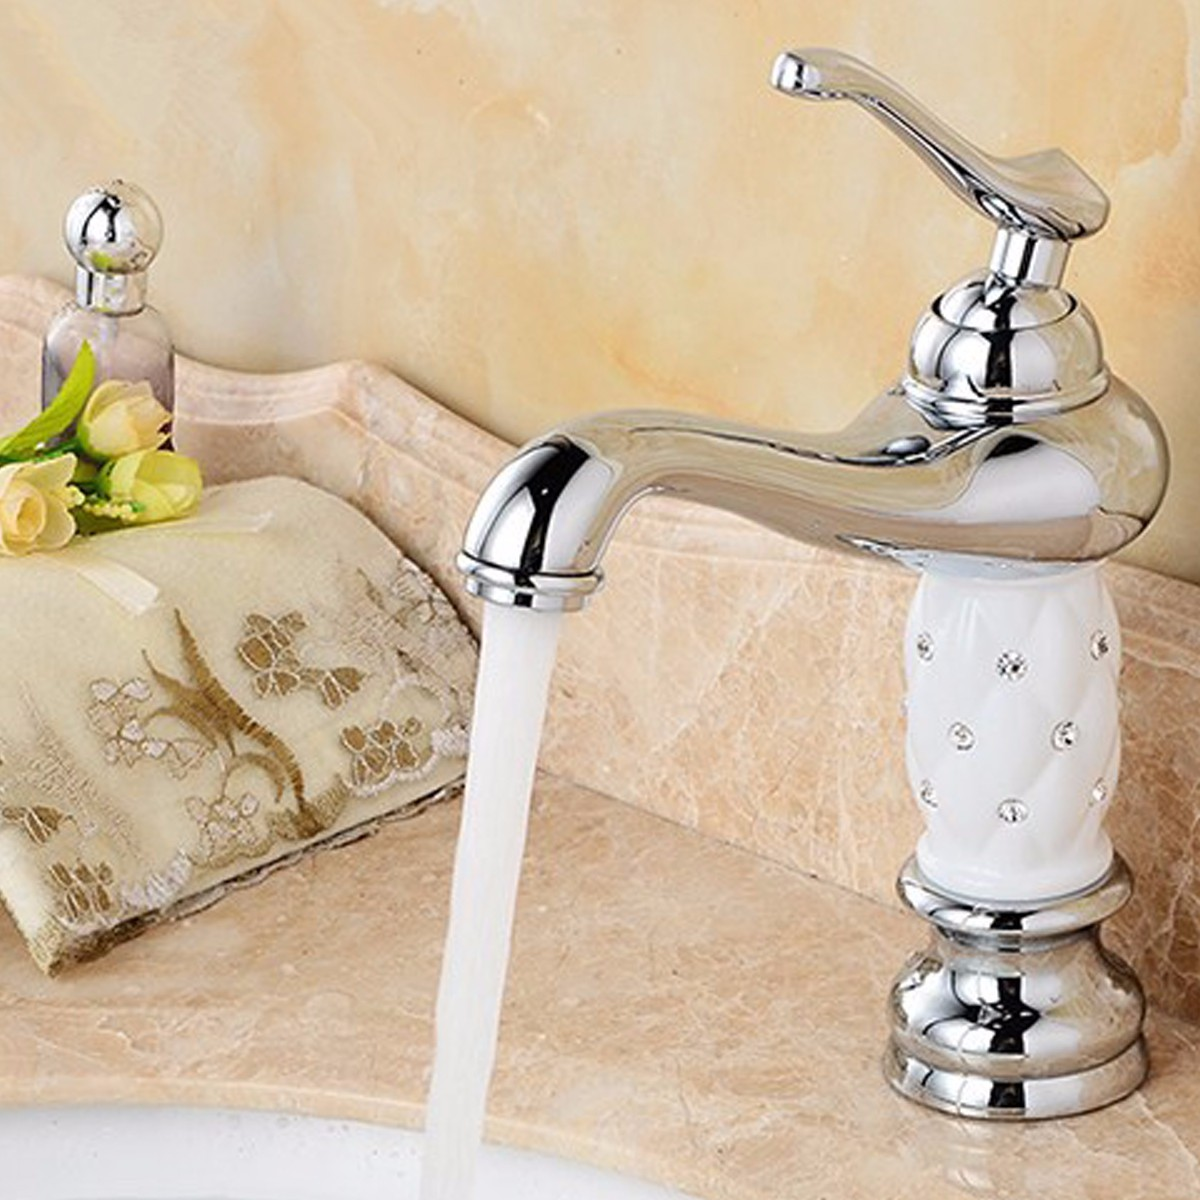 Xueqin Classical European Single Handle Basin Faucet Chrome Polished Bathroom Hot and Cold Water Sink Mix Tap Ceramic Handle